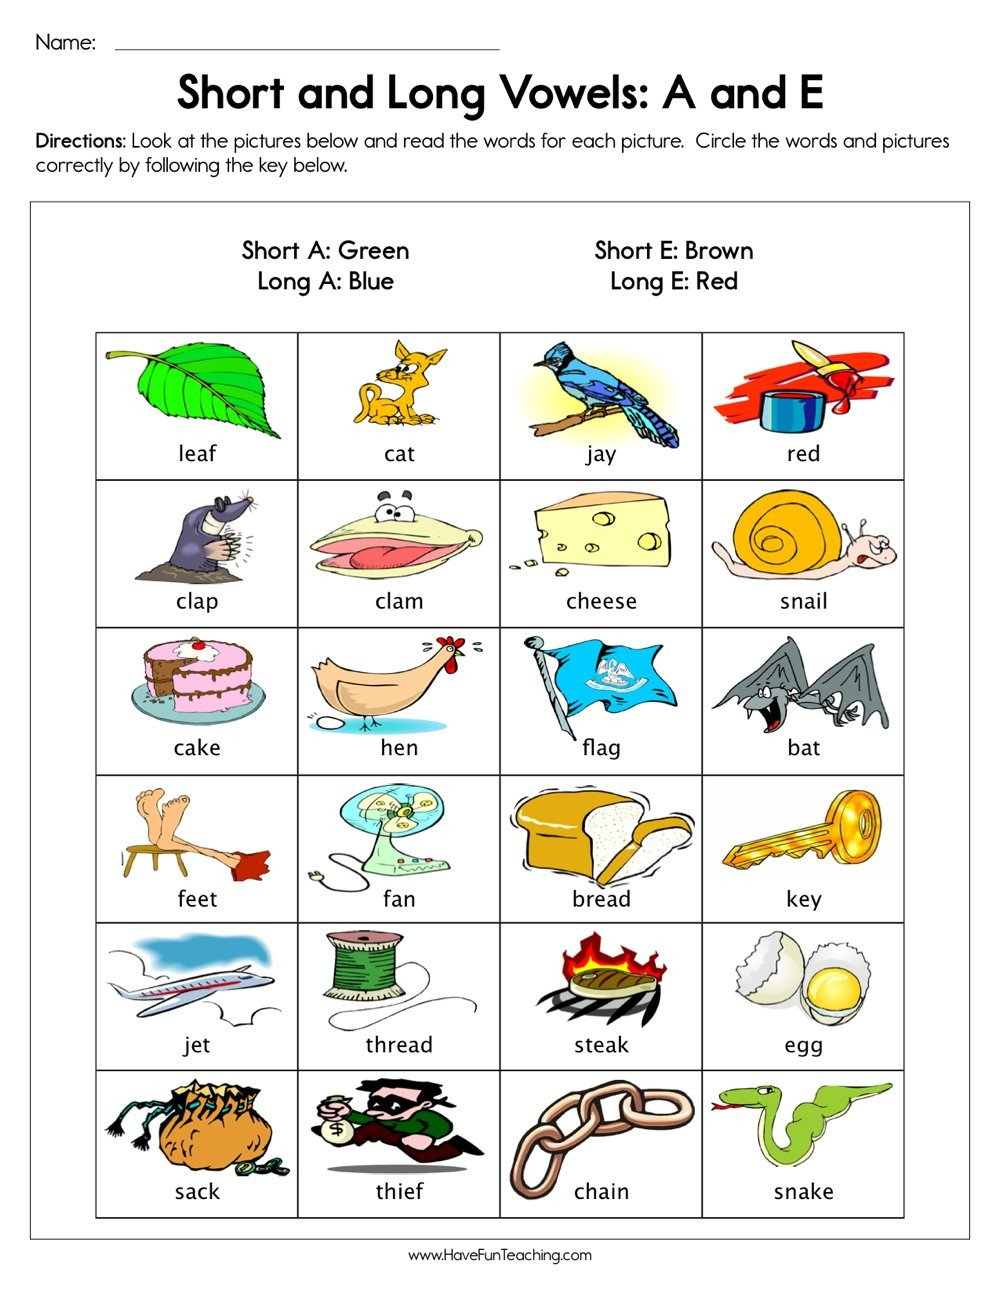 Long Vowels Worksheets Kindergarten Short and Long Vowels A and E Worksheet